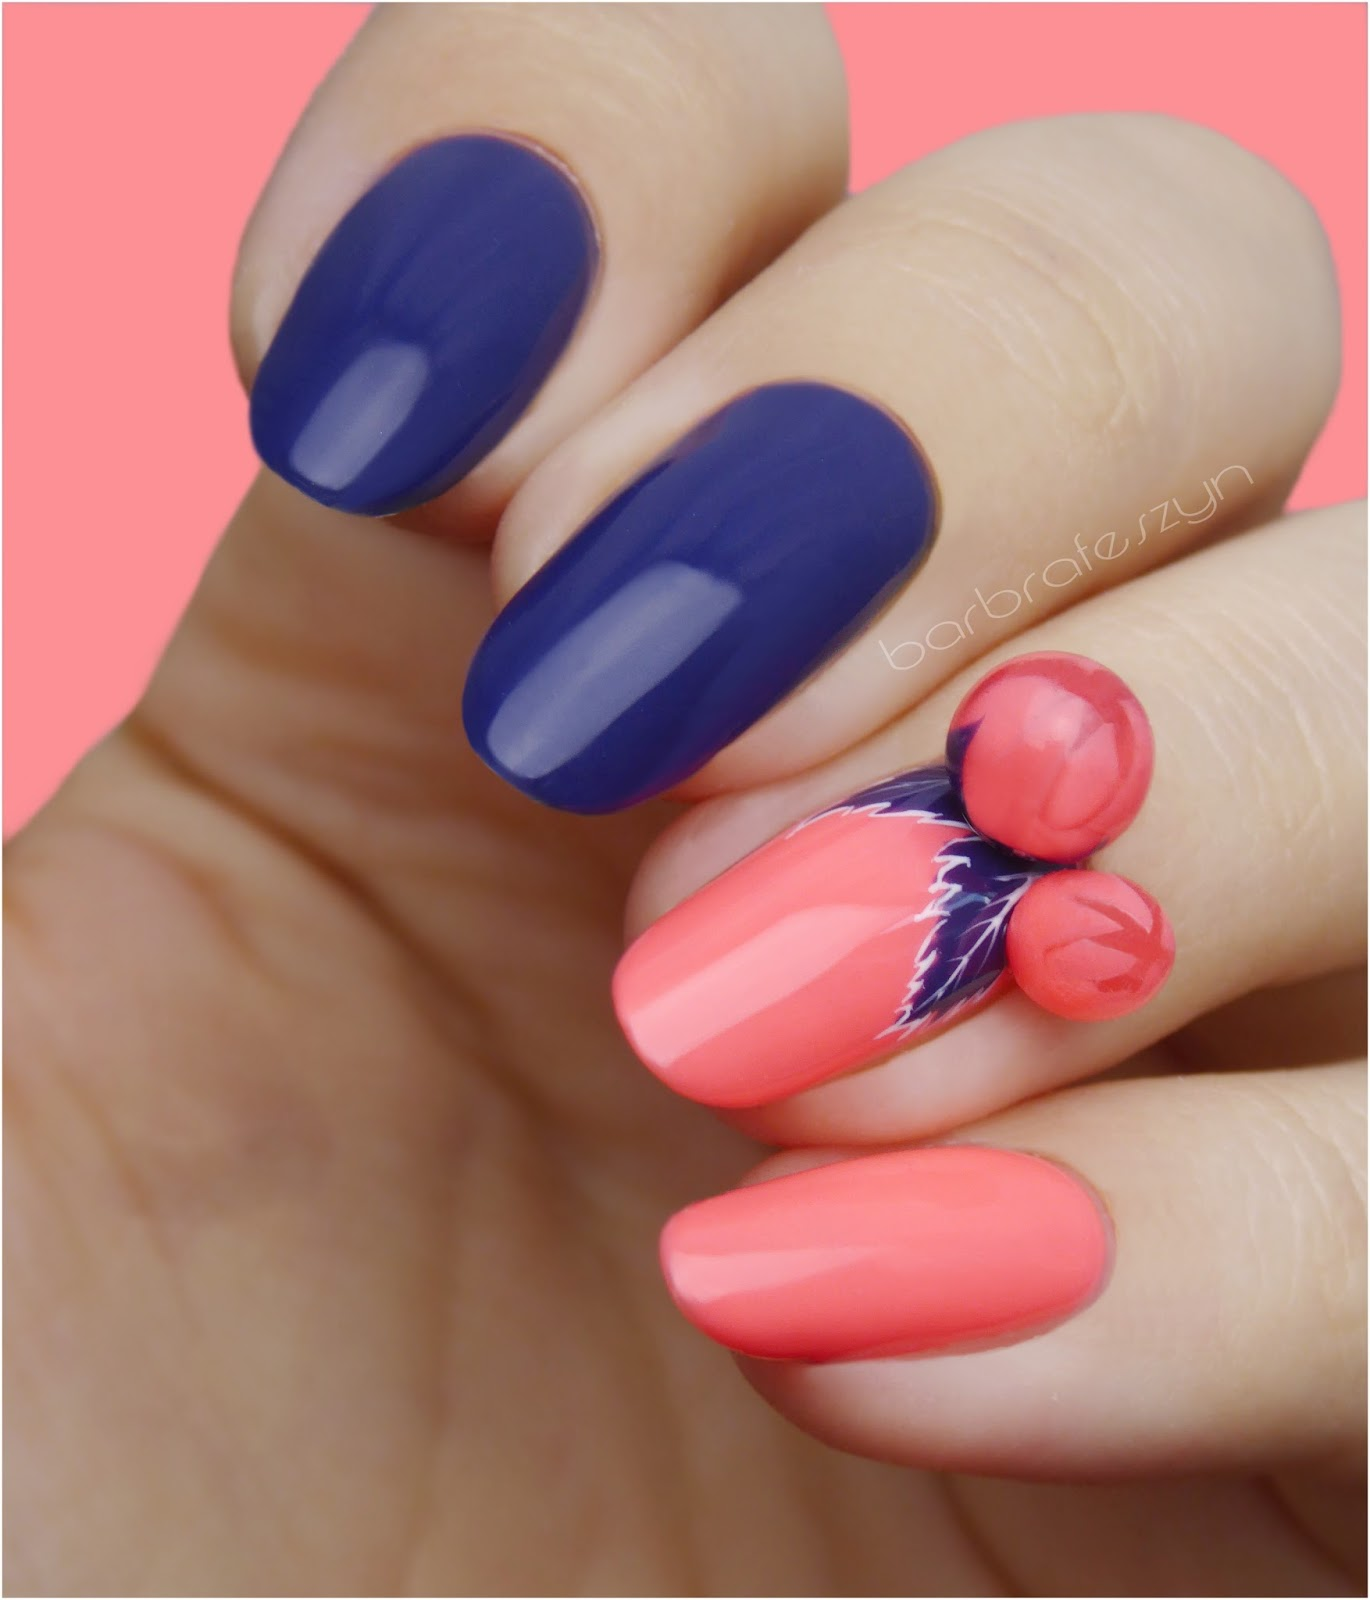 New Trend Candy Ball Nails What Do You Think About It It S My